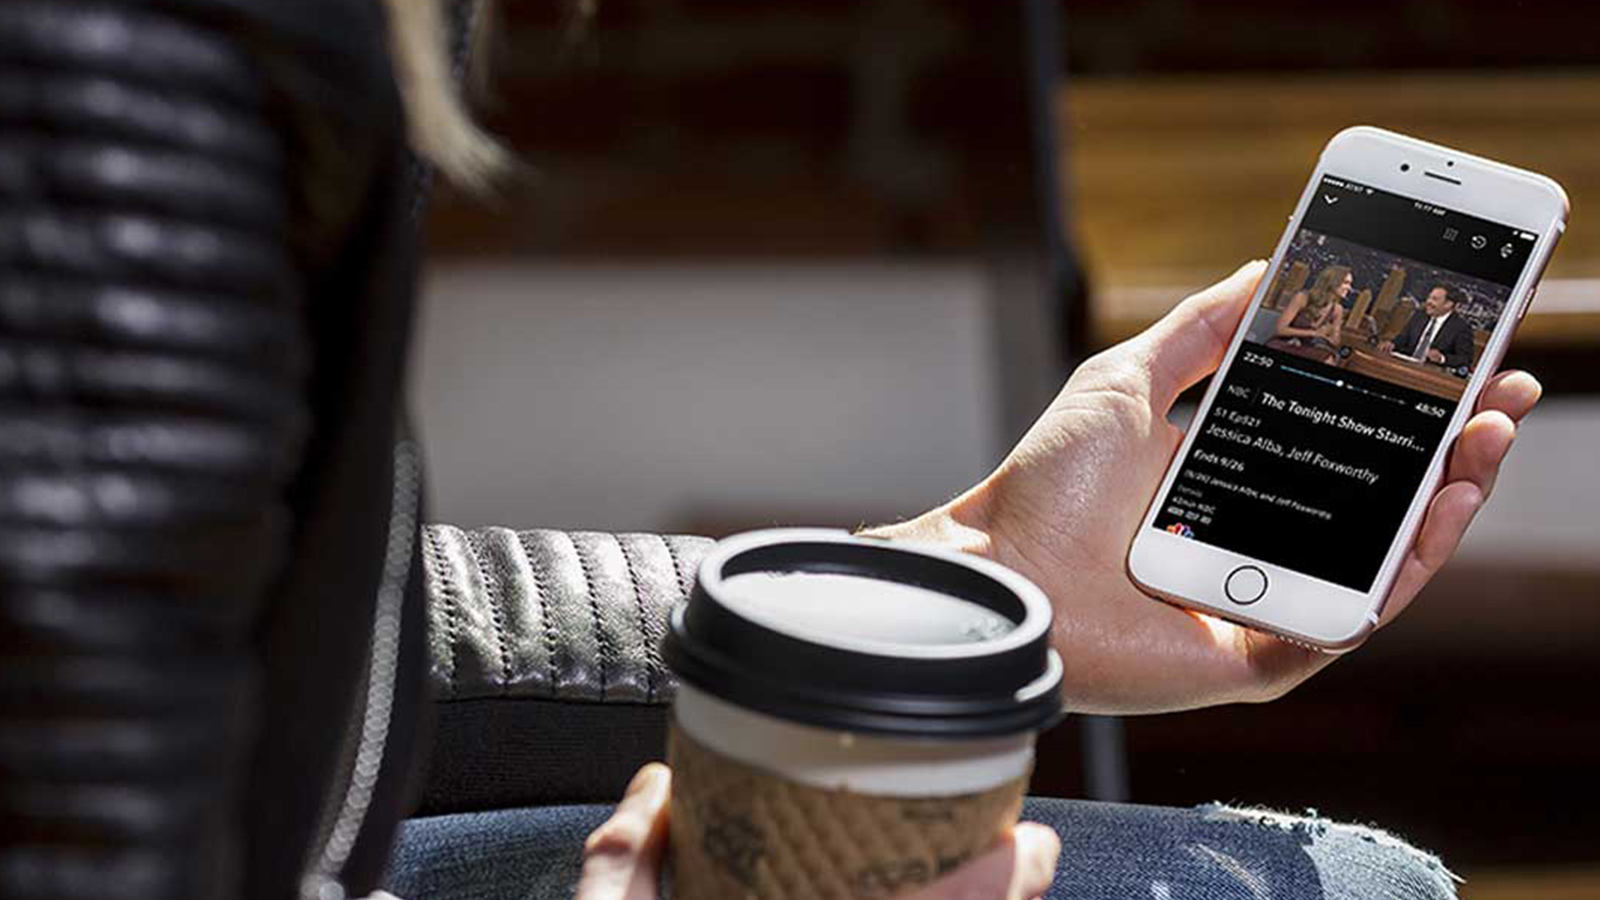 A person uses their mobile phone in a coffee shop.